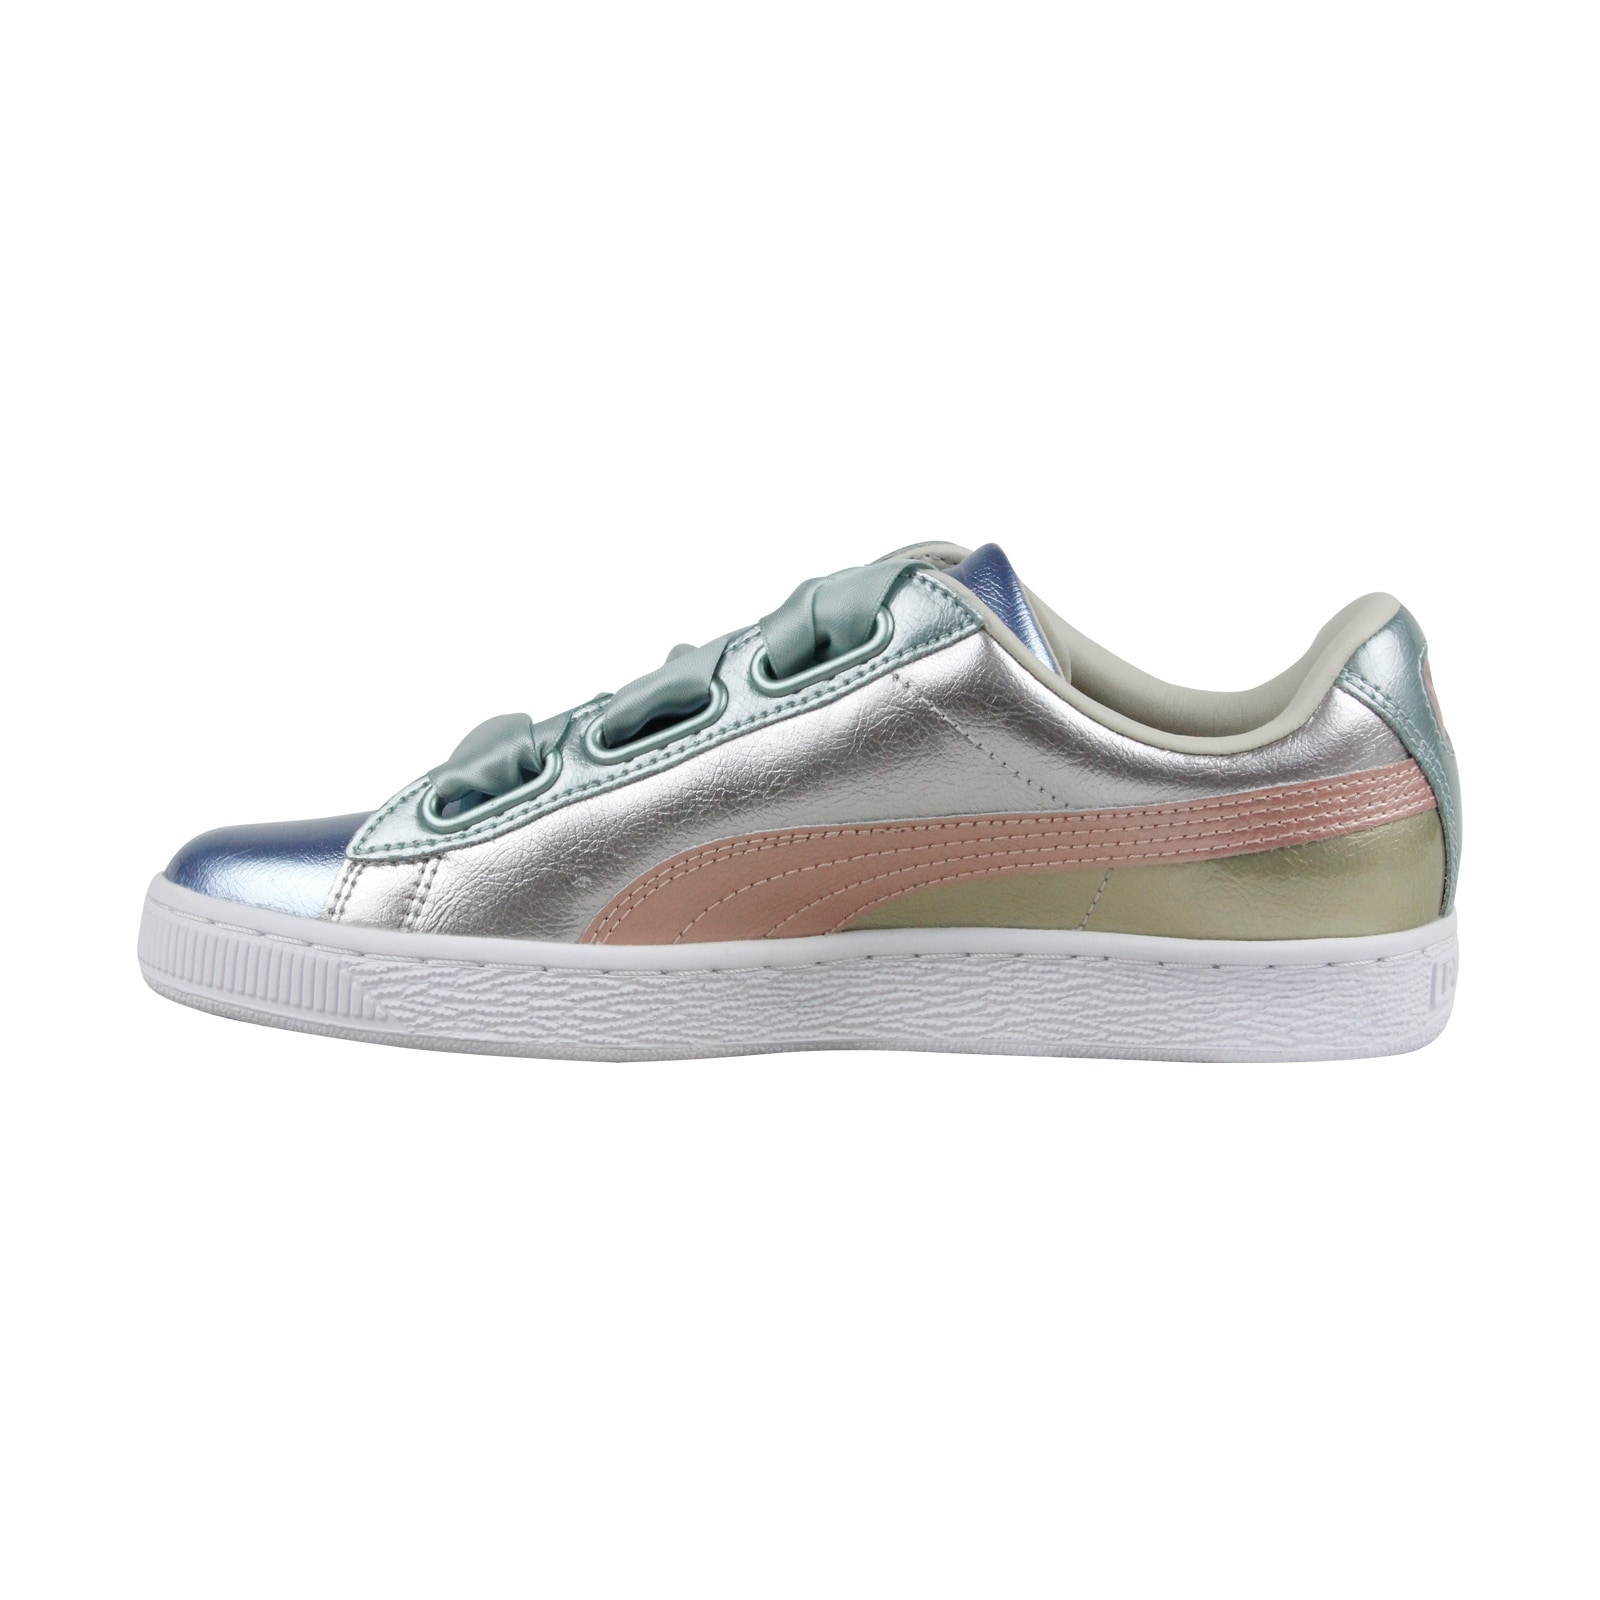 new products 877a1 ee012 Puma Basket Heart Bauble Fm Womens Silver Leather Sneakers Shoes